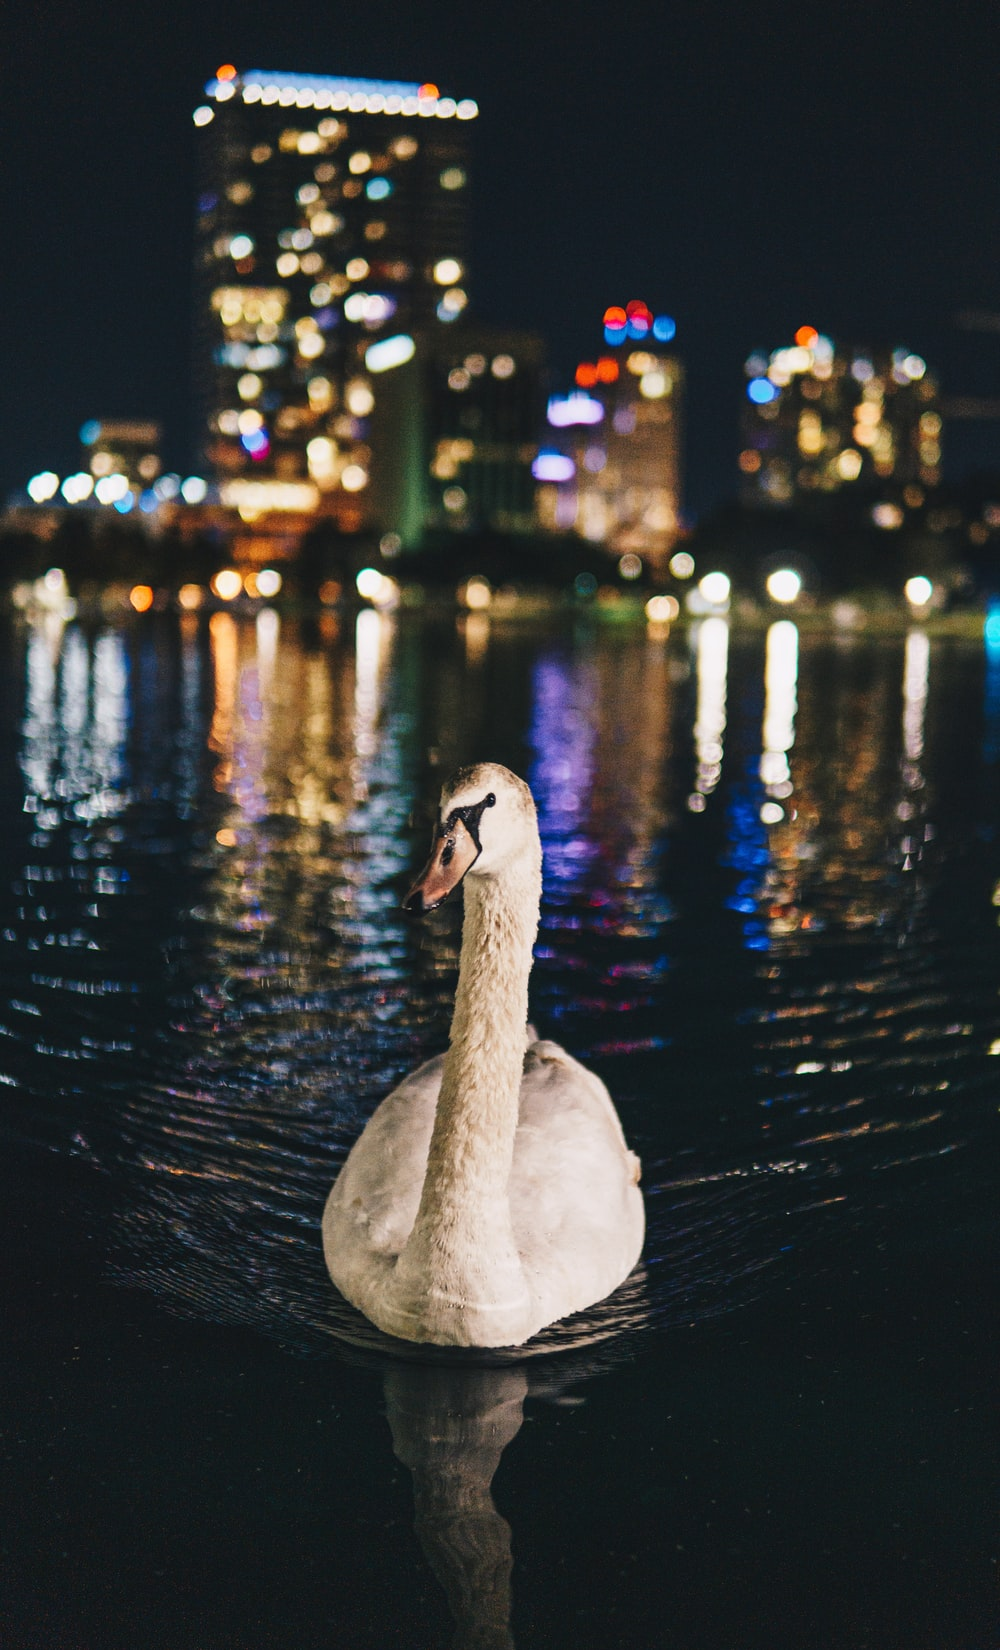 white duck floating on body of water near the city during night